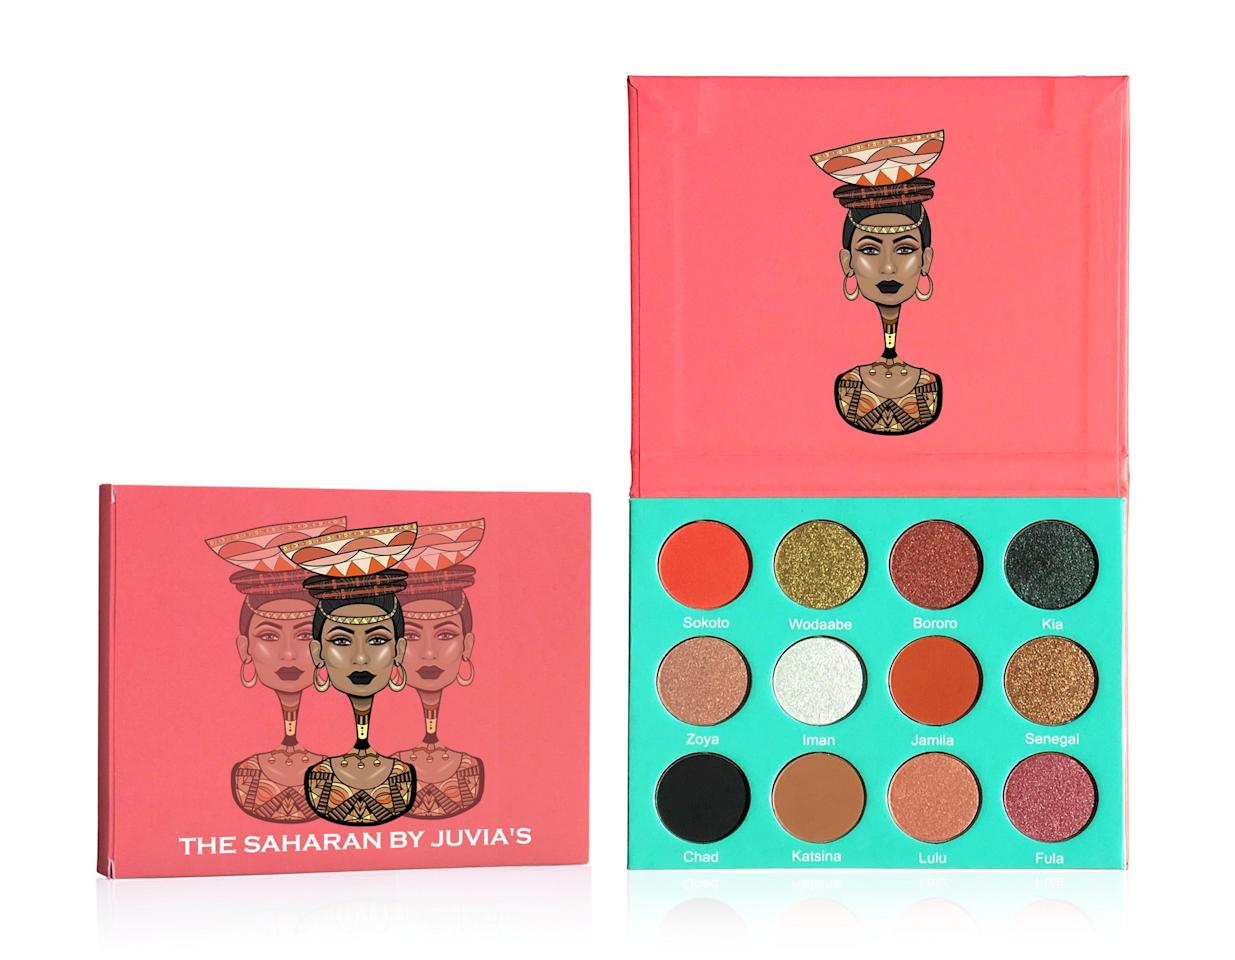 "<p>Created in celebration of the many tribes and cultures in Africa, the brand's founder ChiChi Eburu made it a point to deliver super-pigmented eyeshadow for darker skin tones because she was so sick of trying to find ones that existed. The Saharan eye palette ($28, <a rel=""nofollow"" href=""https://www.juviasplace.com/products/the-saharan-palette?mbid=synd_yahoobeauty&variant=34186636230"">juviasplace.com</a>) features 12 opaque shades that, in one swipe, deliver maximum color payoff.</p>"